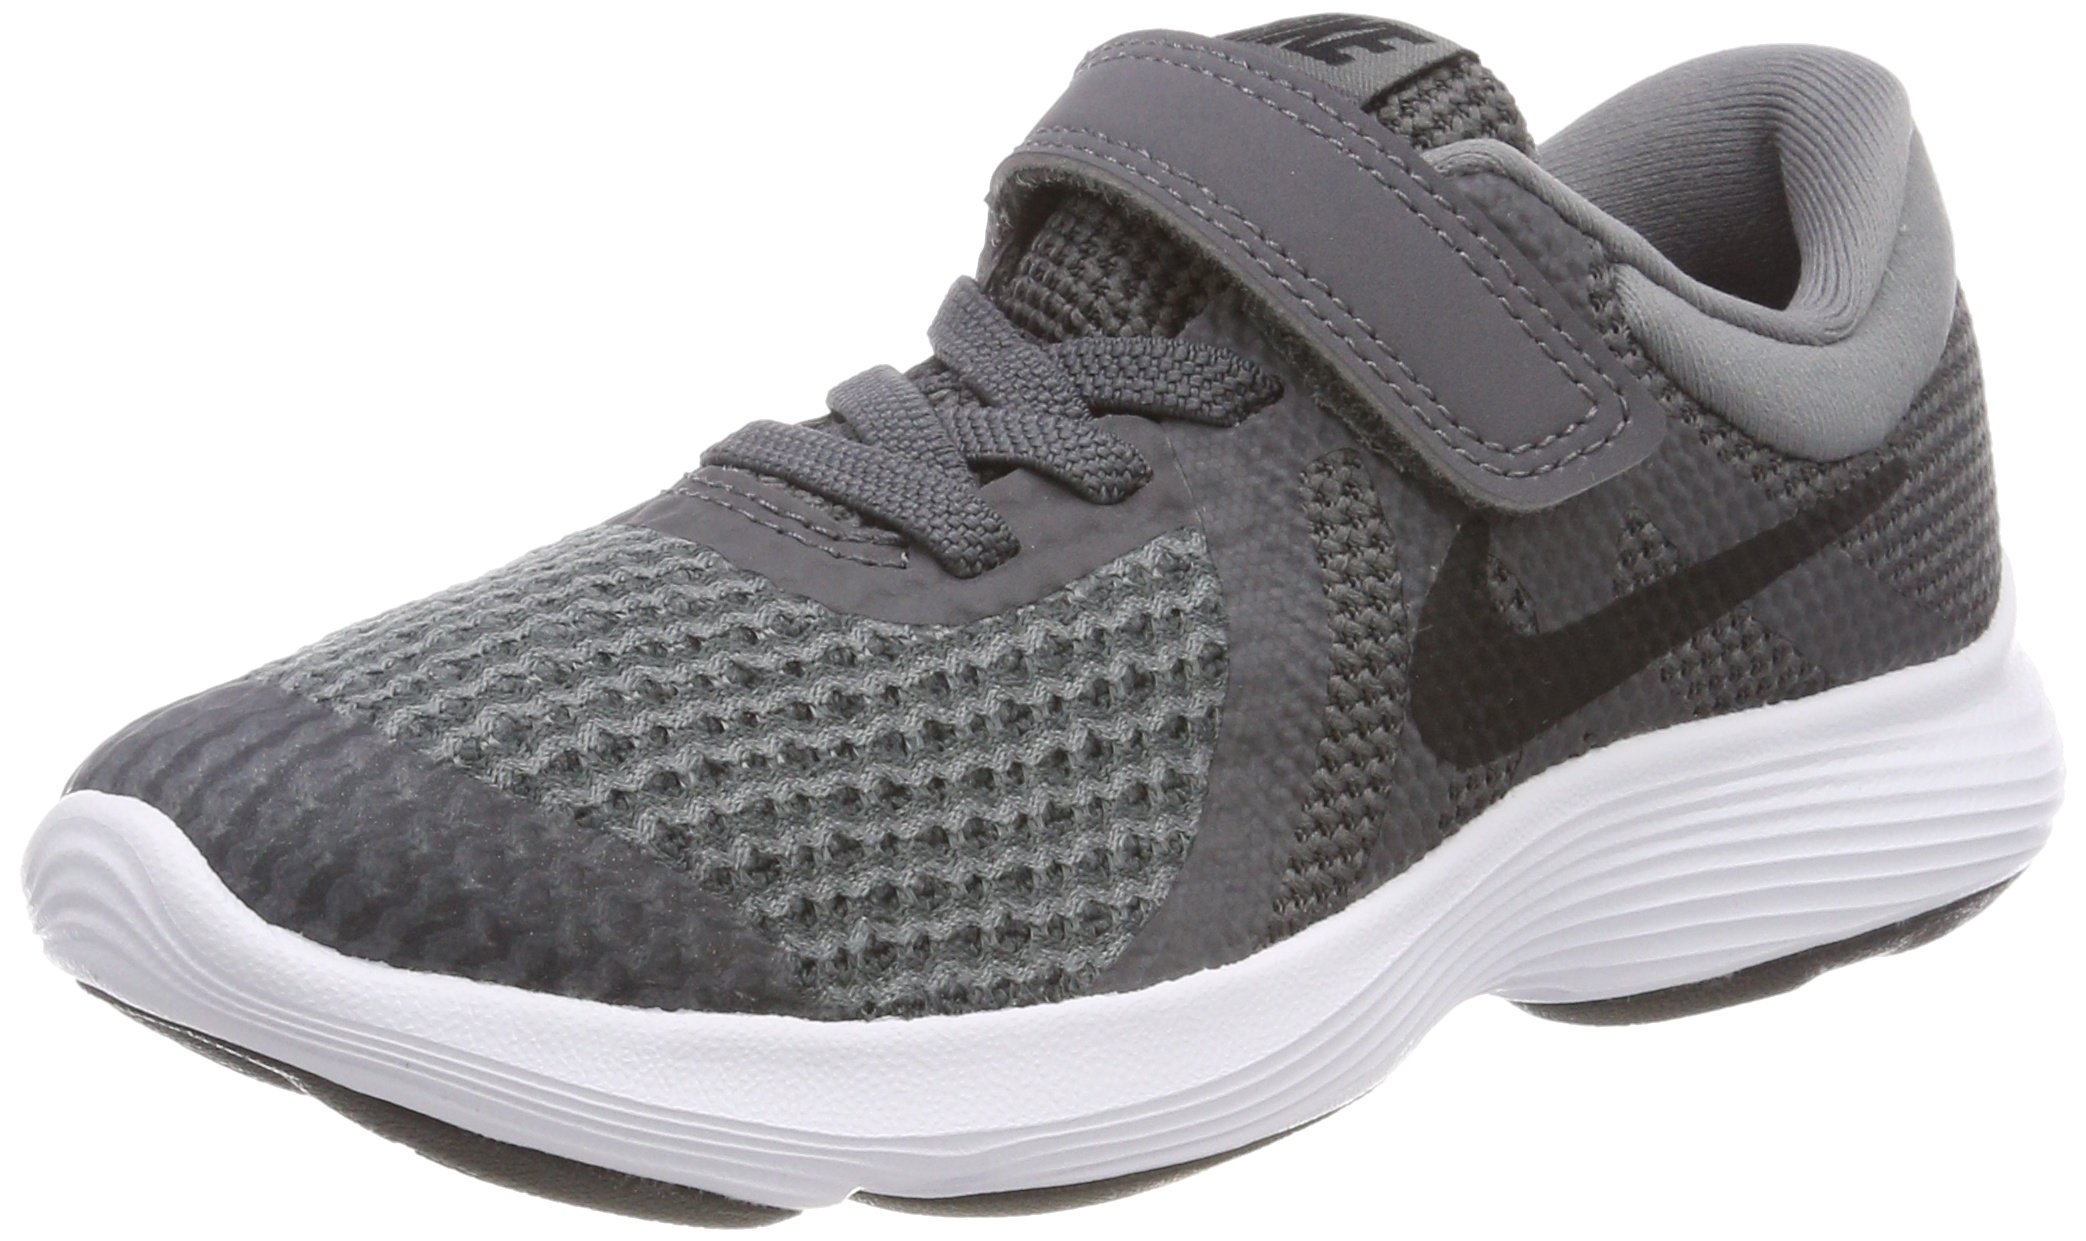 Nike Boys' Revolution 4 (PSV) Running Shoe, Dark Black-Cool Grey-White, 1.5Y Regular US Little Kid by Nike